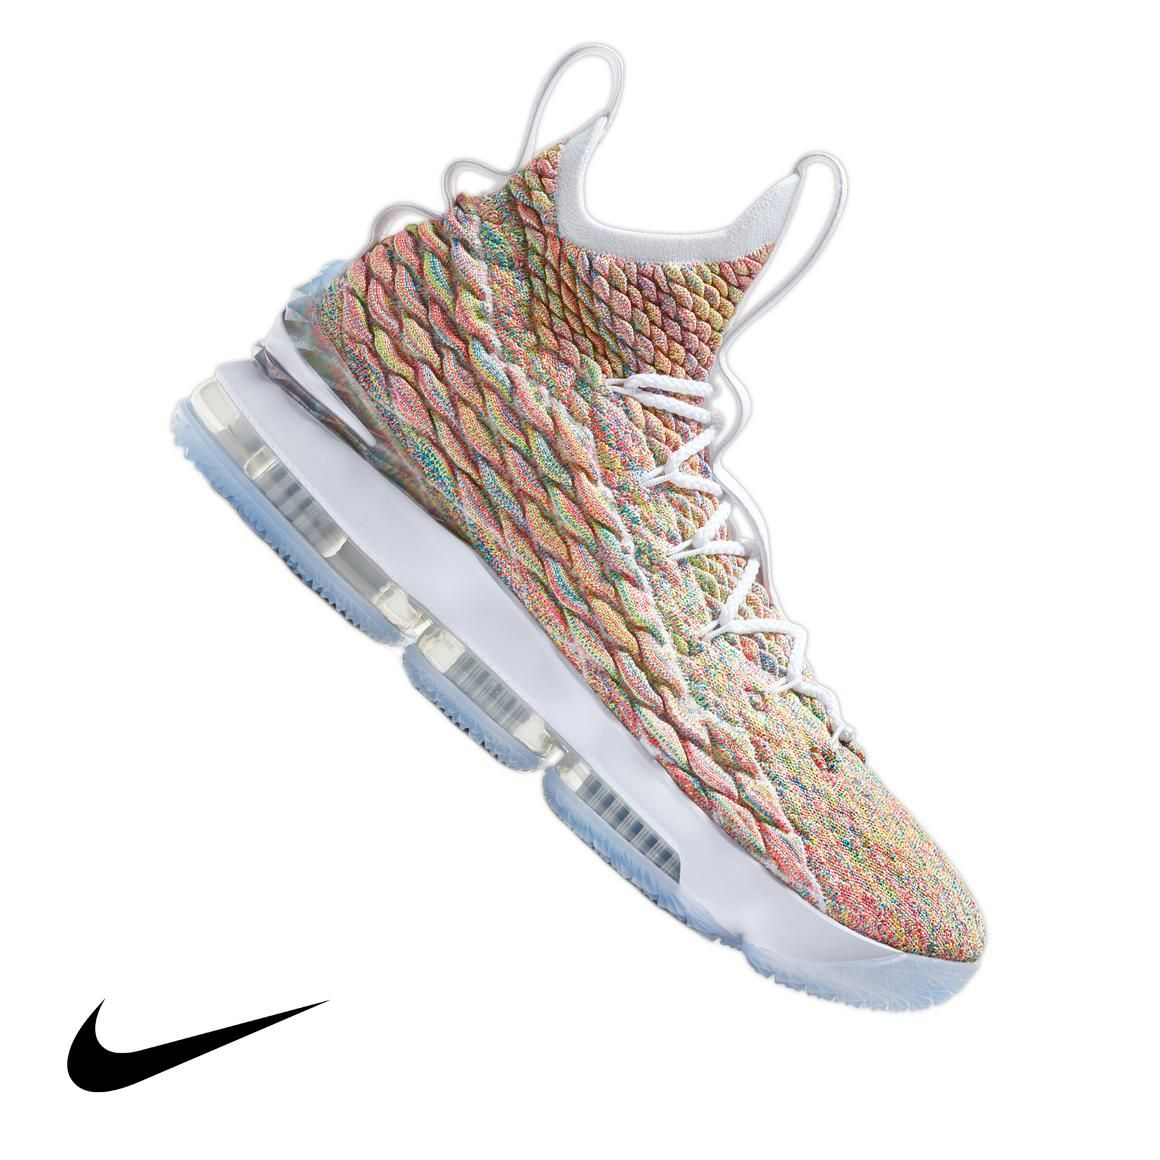 separation shoes f57b0 bde7b Nike LeBron 15